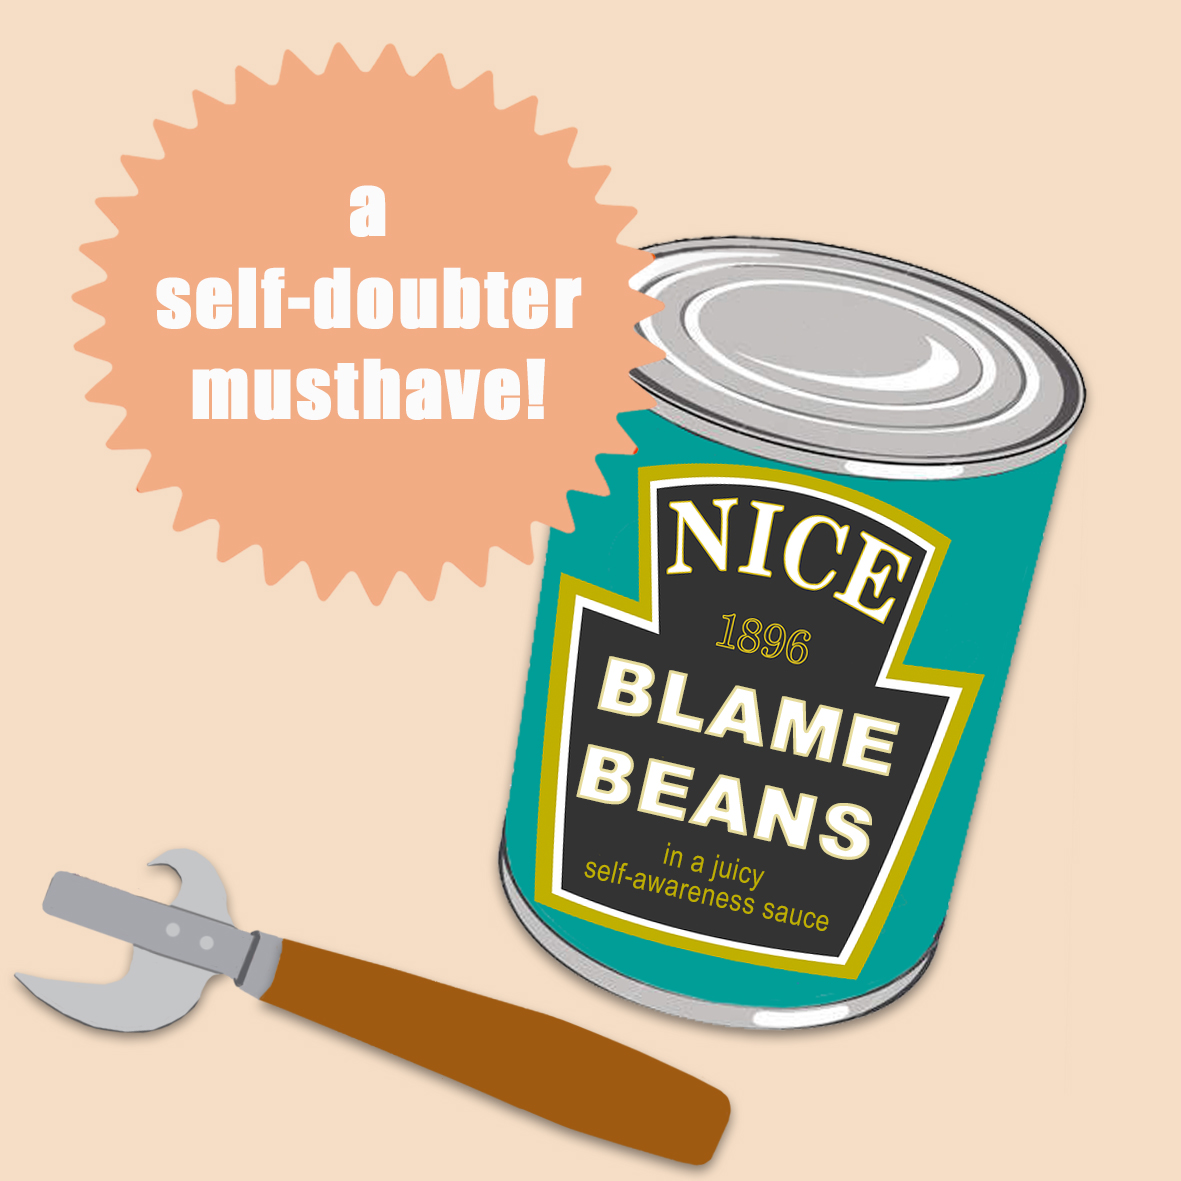 Blame Beans: a self-doubter musthave!